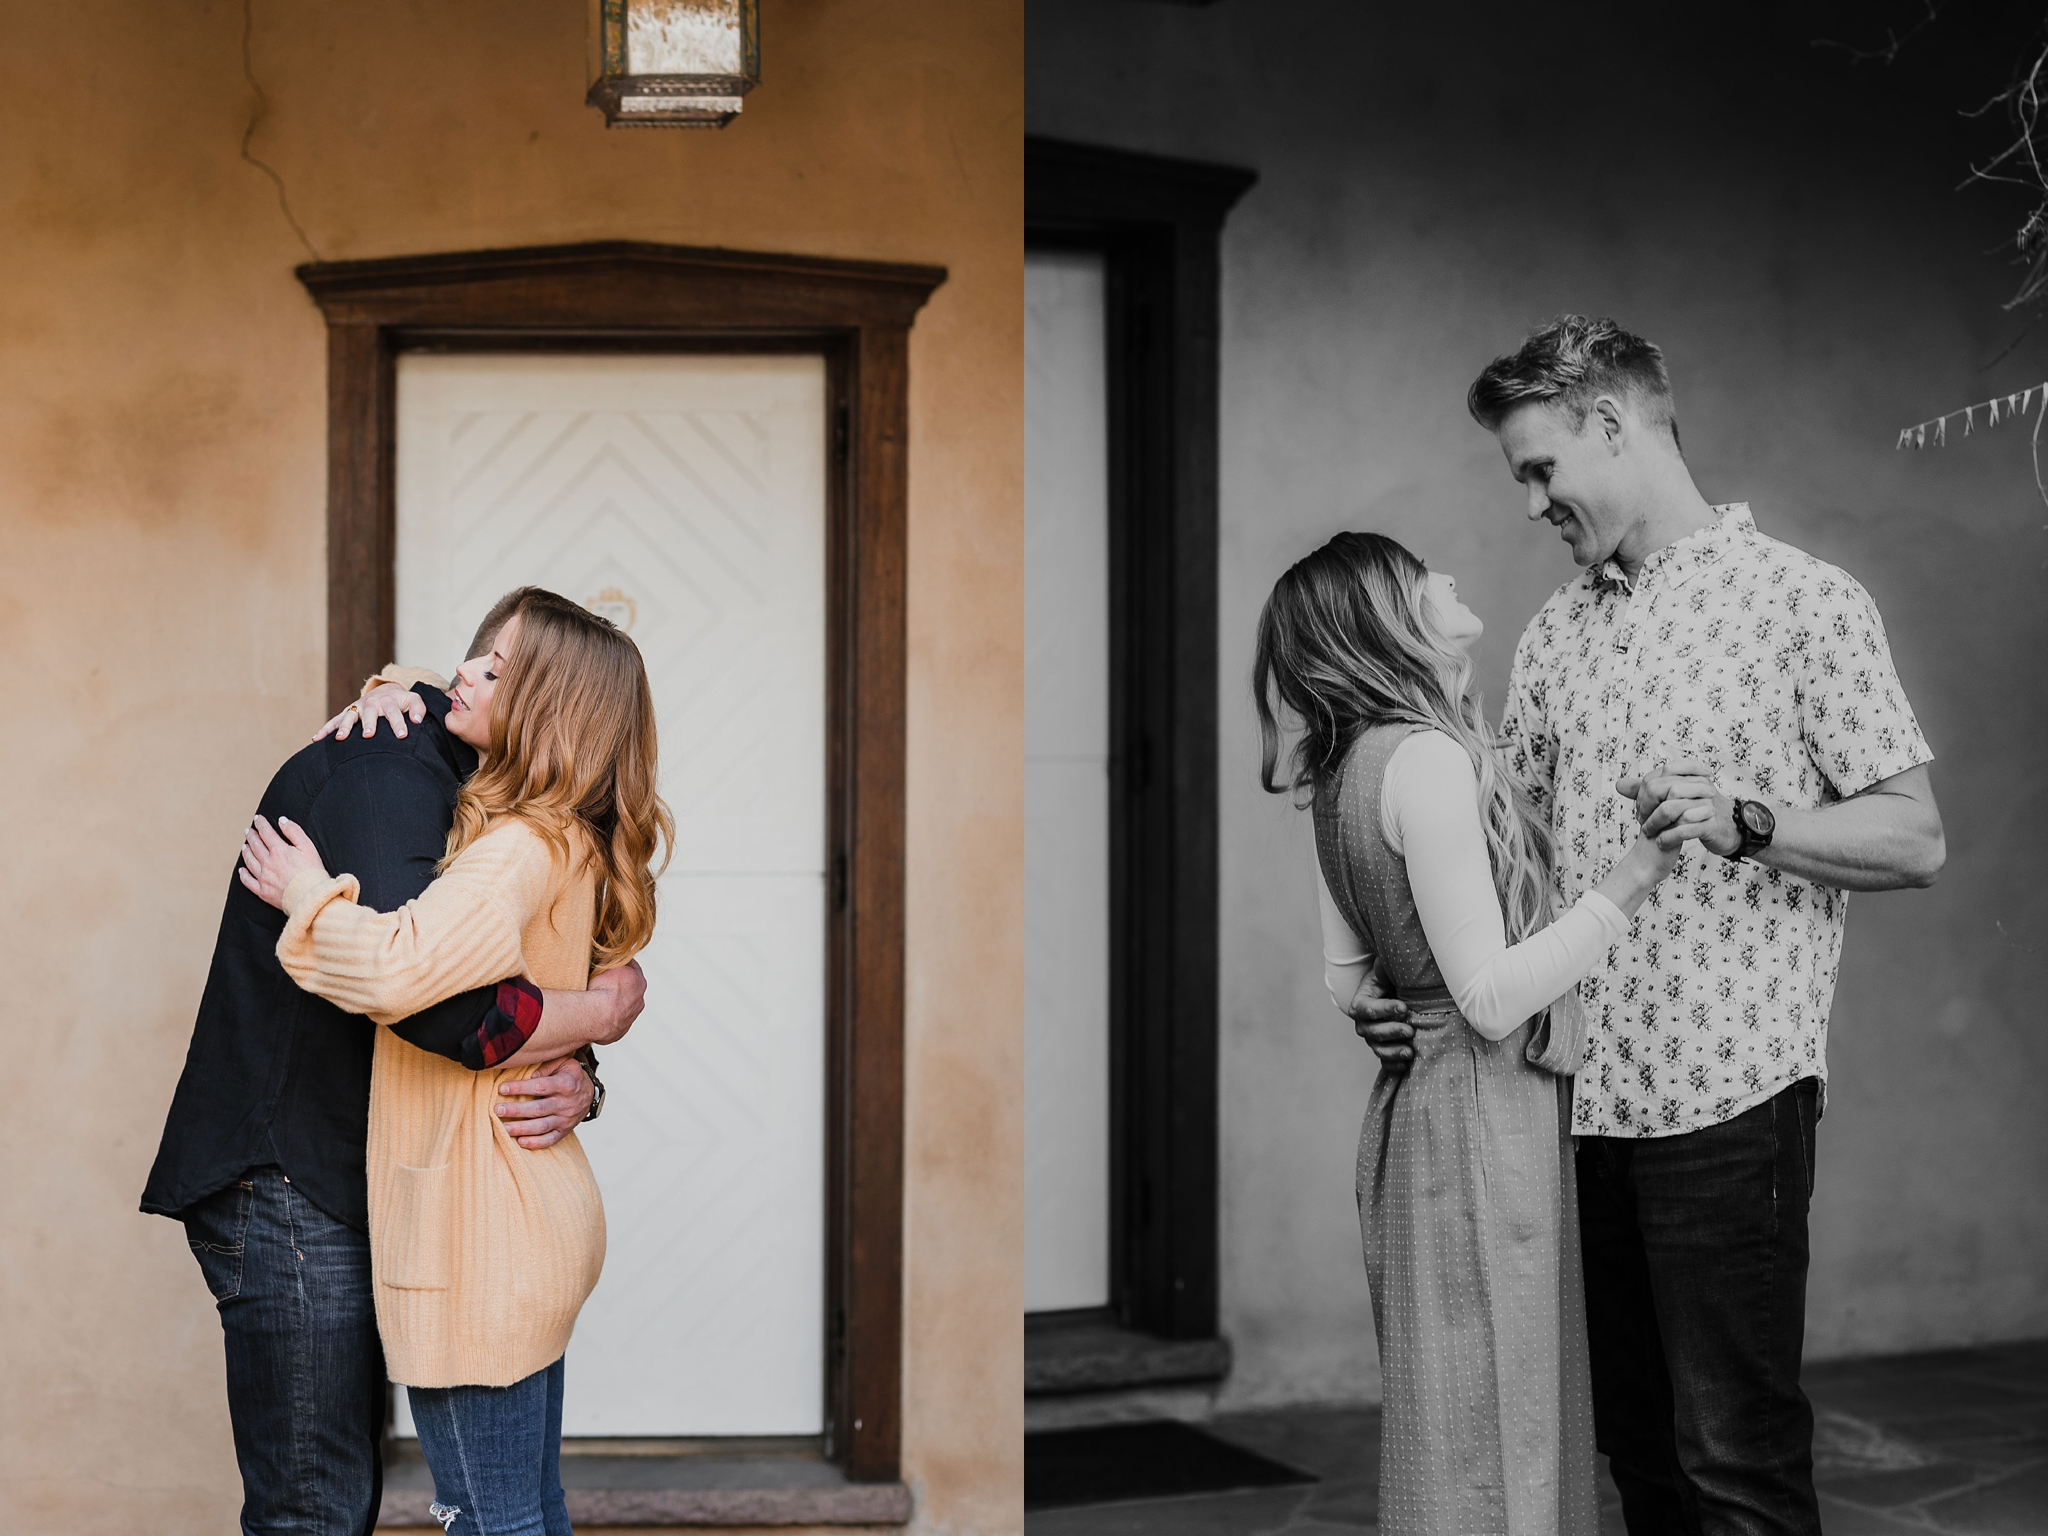 Alicia+lucia+photography+-+albuquerque+wedding+photographer+-+santa+fe+wedding+photography+-+new+mexico+wedding+photographer+-+new+mexico+wedding+-+albuquerque+wedding+-+rocky+mountain+bride+-+los+poblanos+wedding_0007.jpg